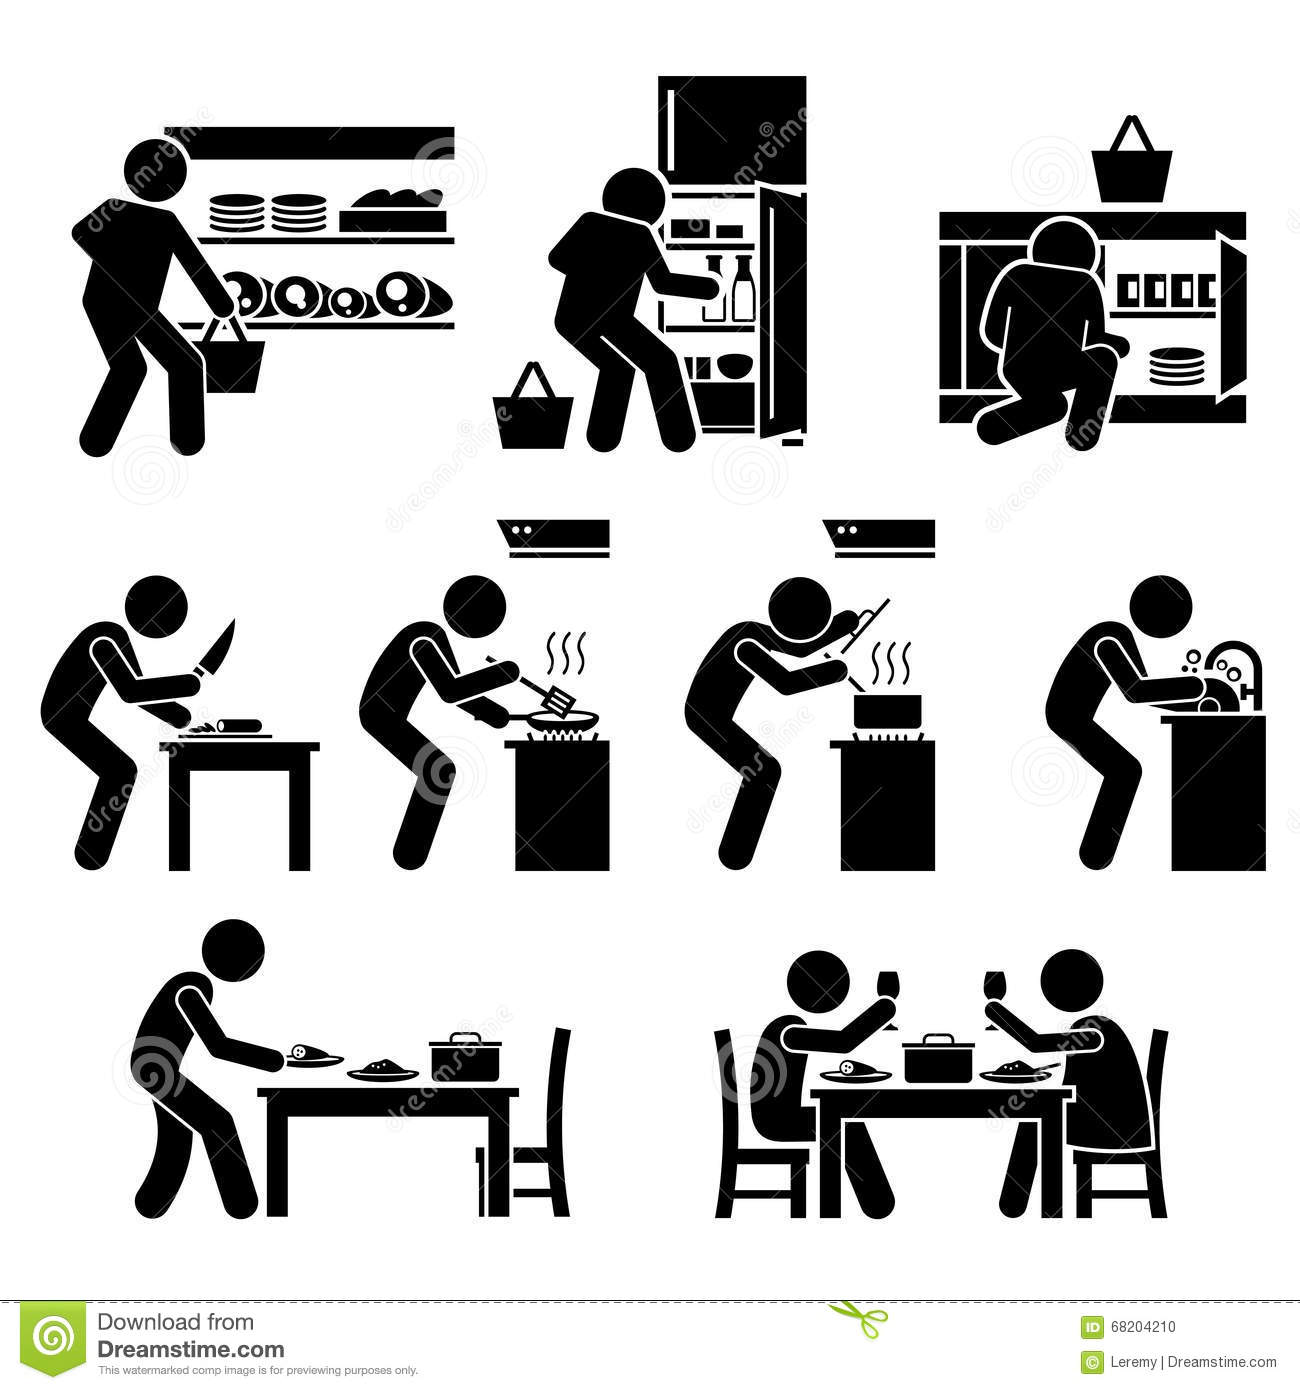 Cooking At Home And Preparing Food Clipart Stock Vector - Image ...